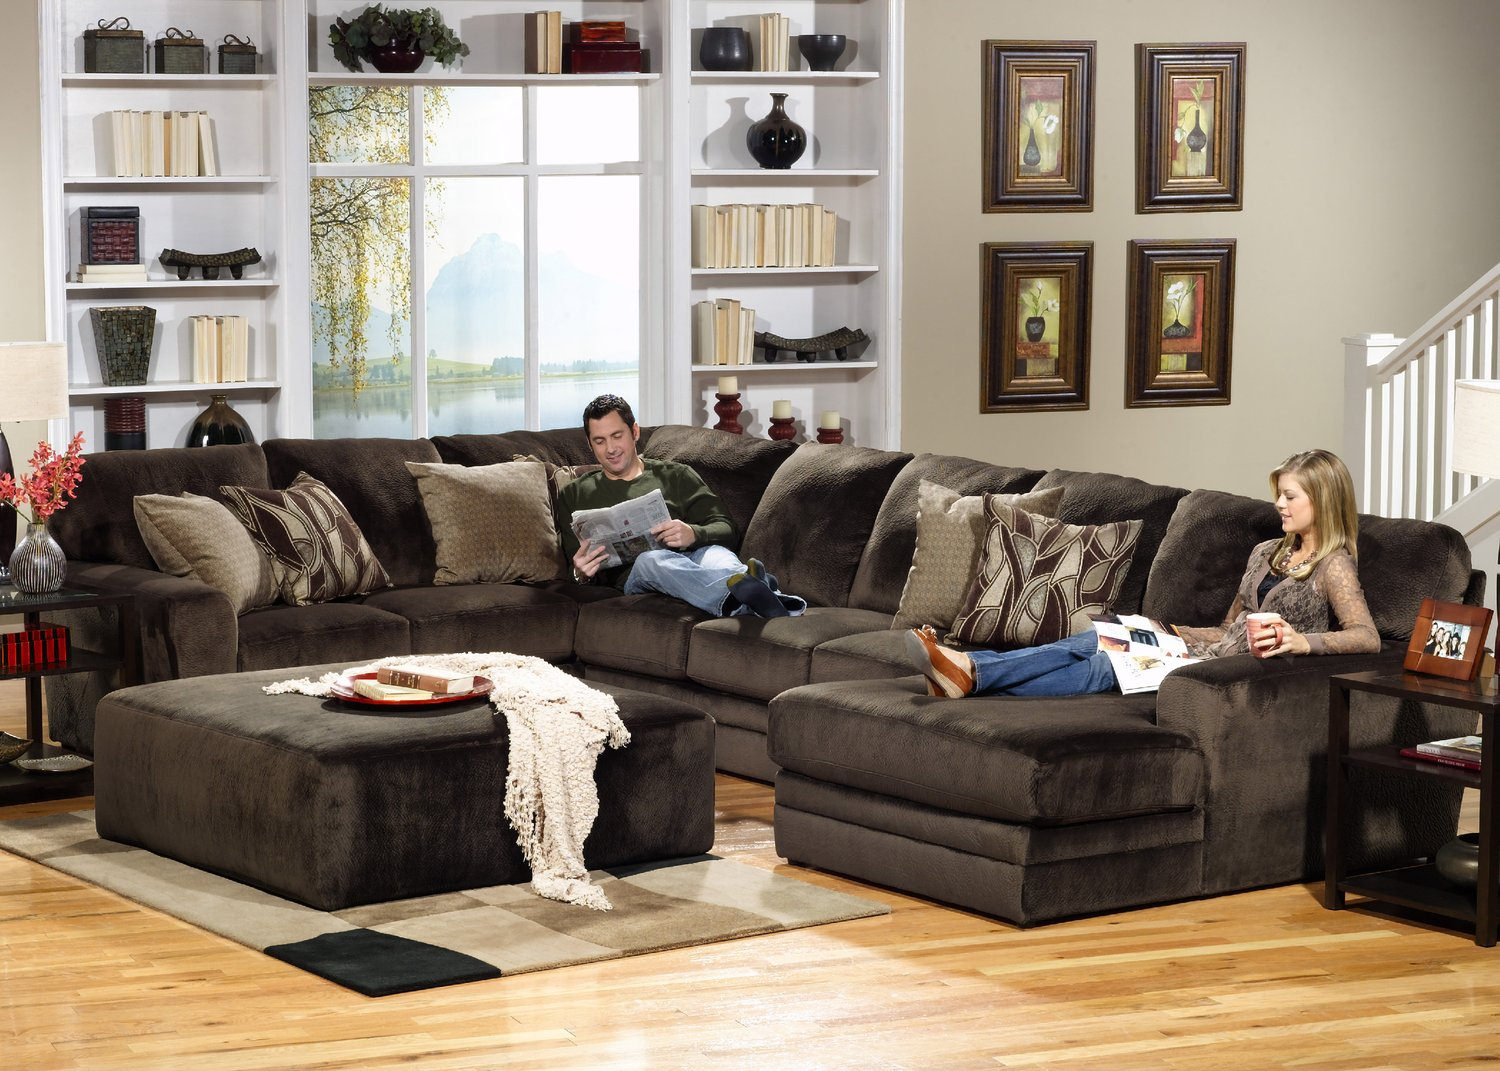 Sectional Sofas Living Room Seating Hom Furniture Pertaining To 10 Piece Sectional Sofa (View 11 of 15)